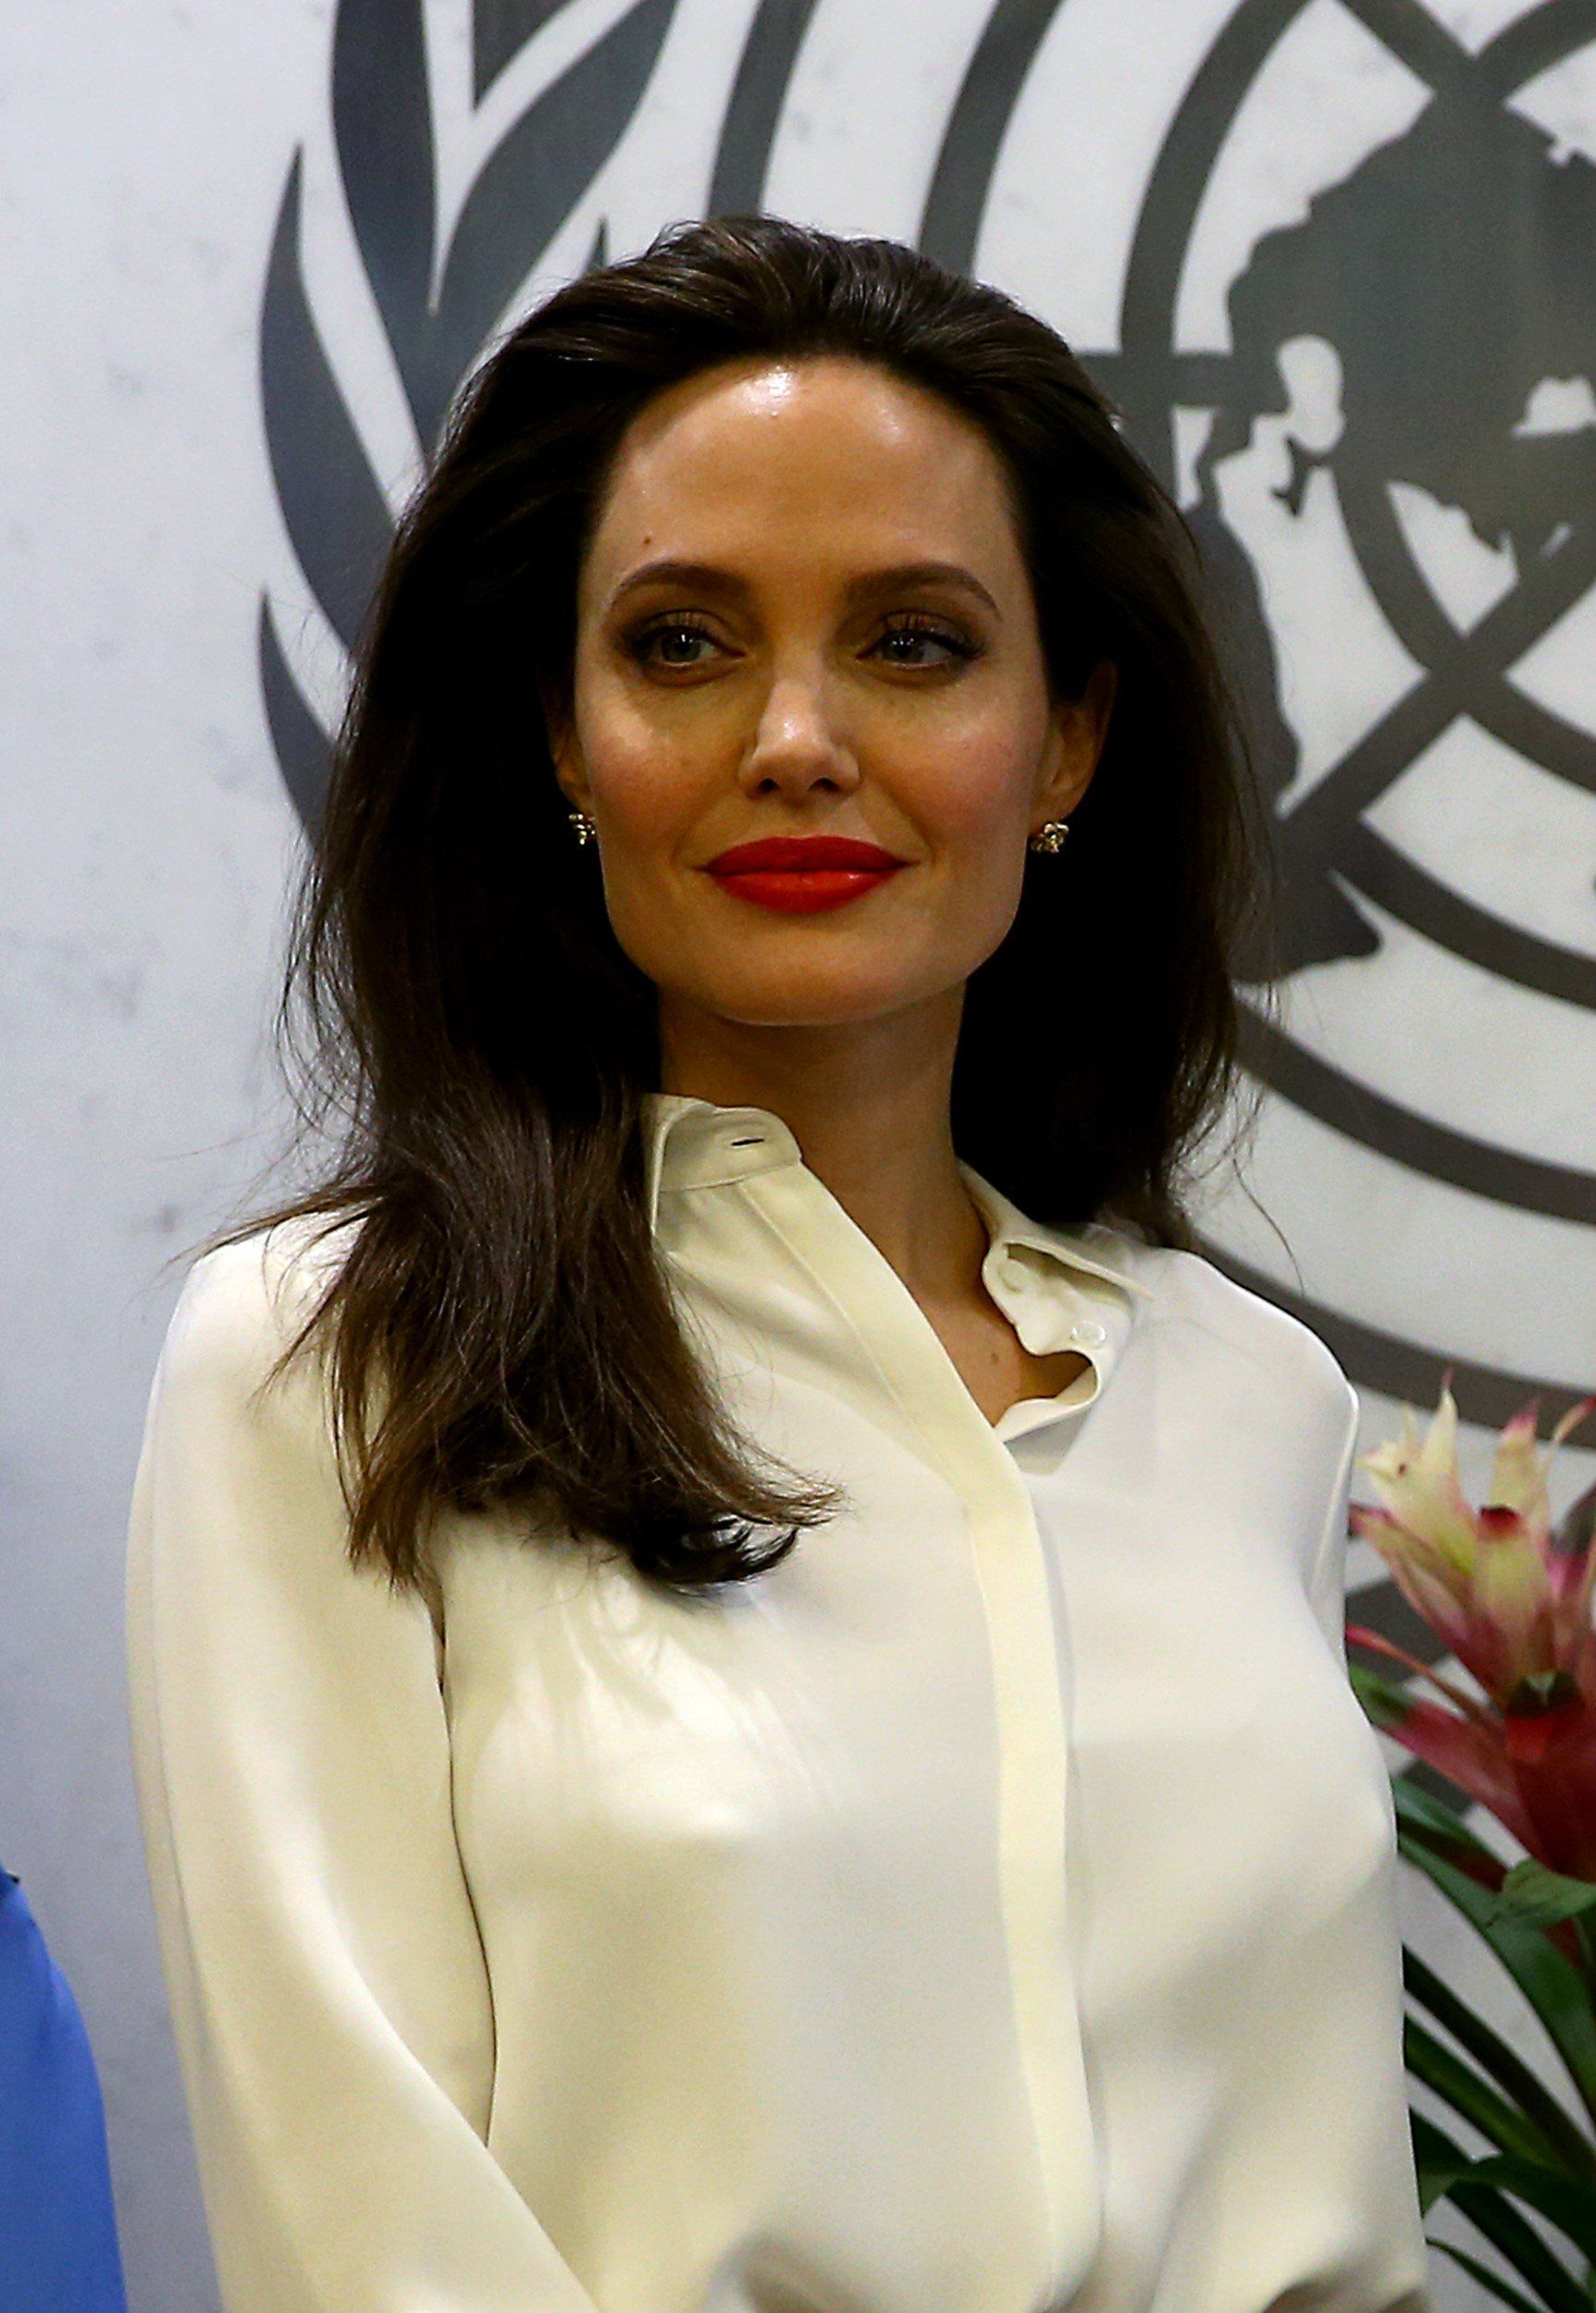 NEW YORK, USA - SEPTEMBER 14: US actress and the UN refugee agency UNHCR (United Nations High Commissioner for Refugees) Special Envoy Angelina Jolie meets United Nations Secretary General Antonio Guterres (not seen) at United Nation's building in New York, United States on September 14, 2017. (Photo by Volkan Furuncu/Anadolu Agency/Getty Images)